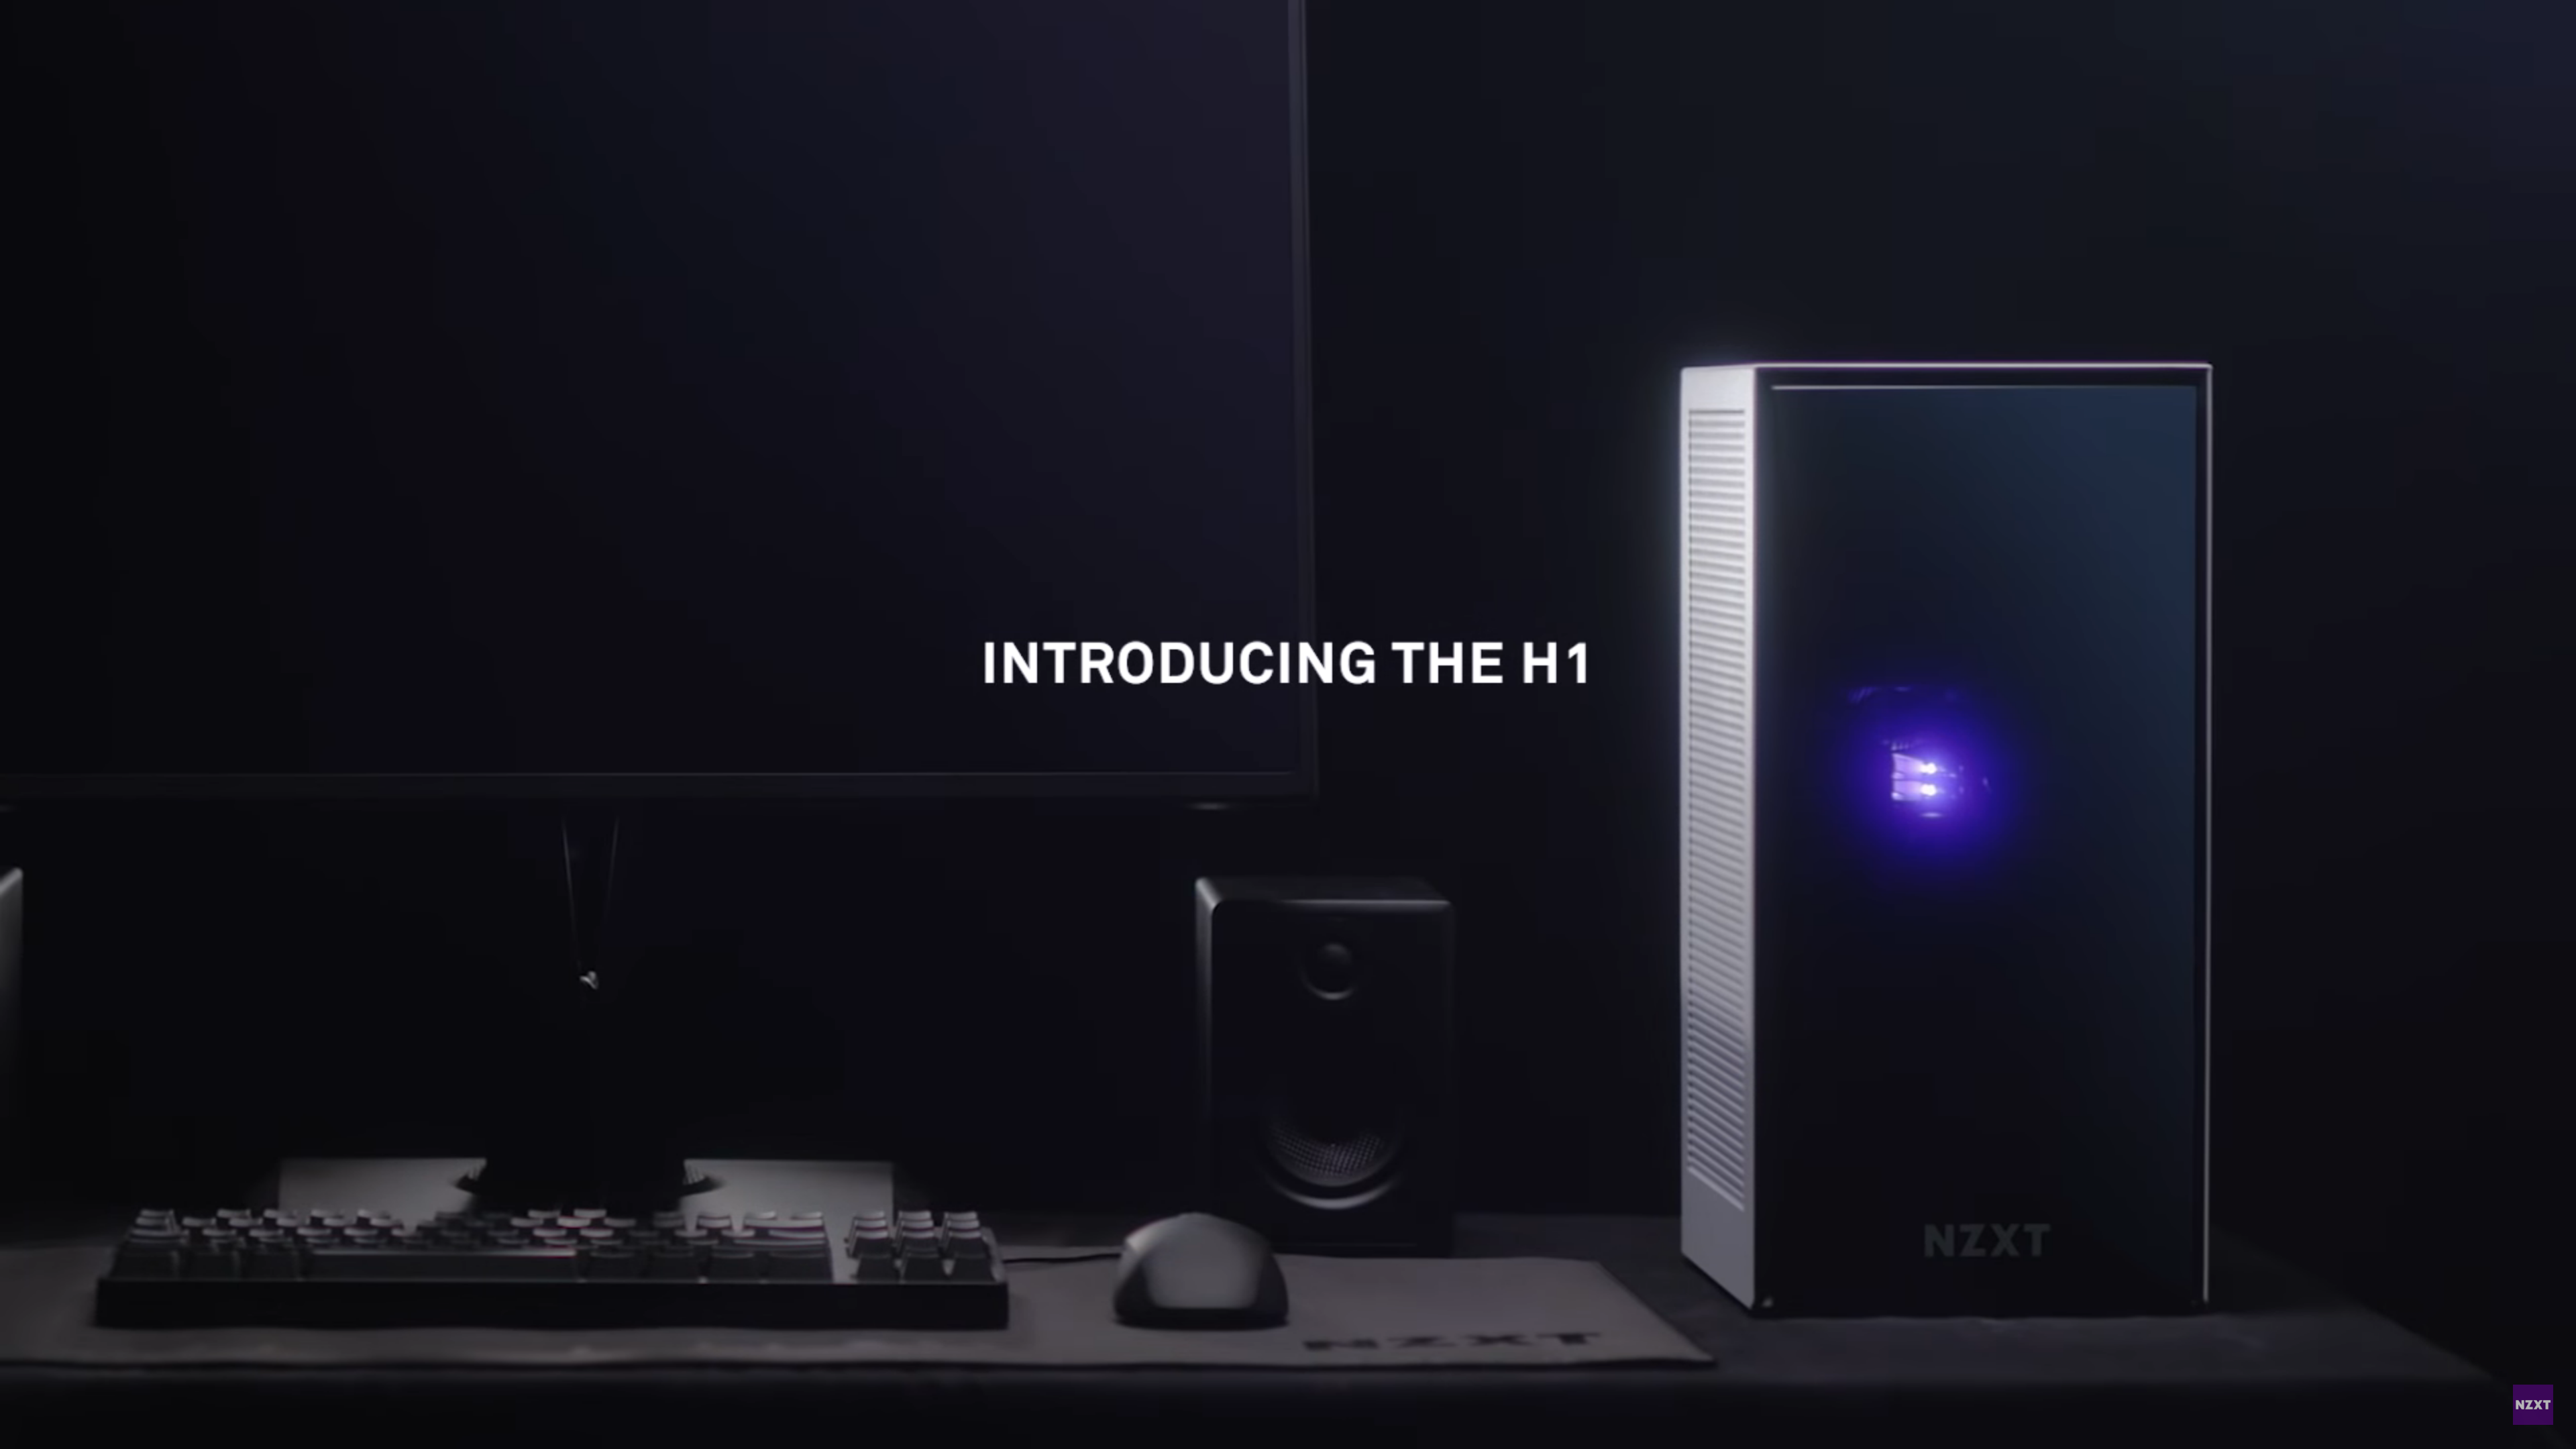 Nzxt Introduces The H1 Mini Itx Case And The Nzxt Bld H1 Pre Build